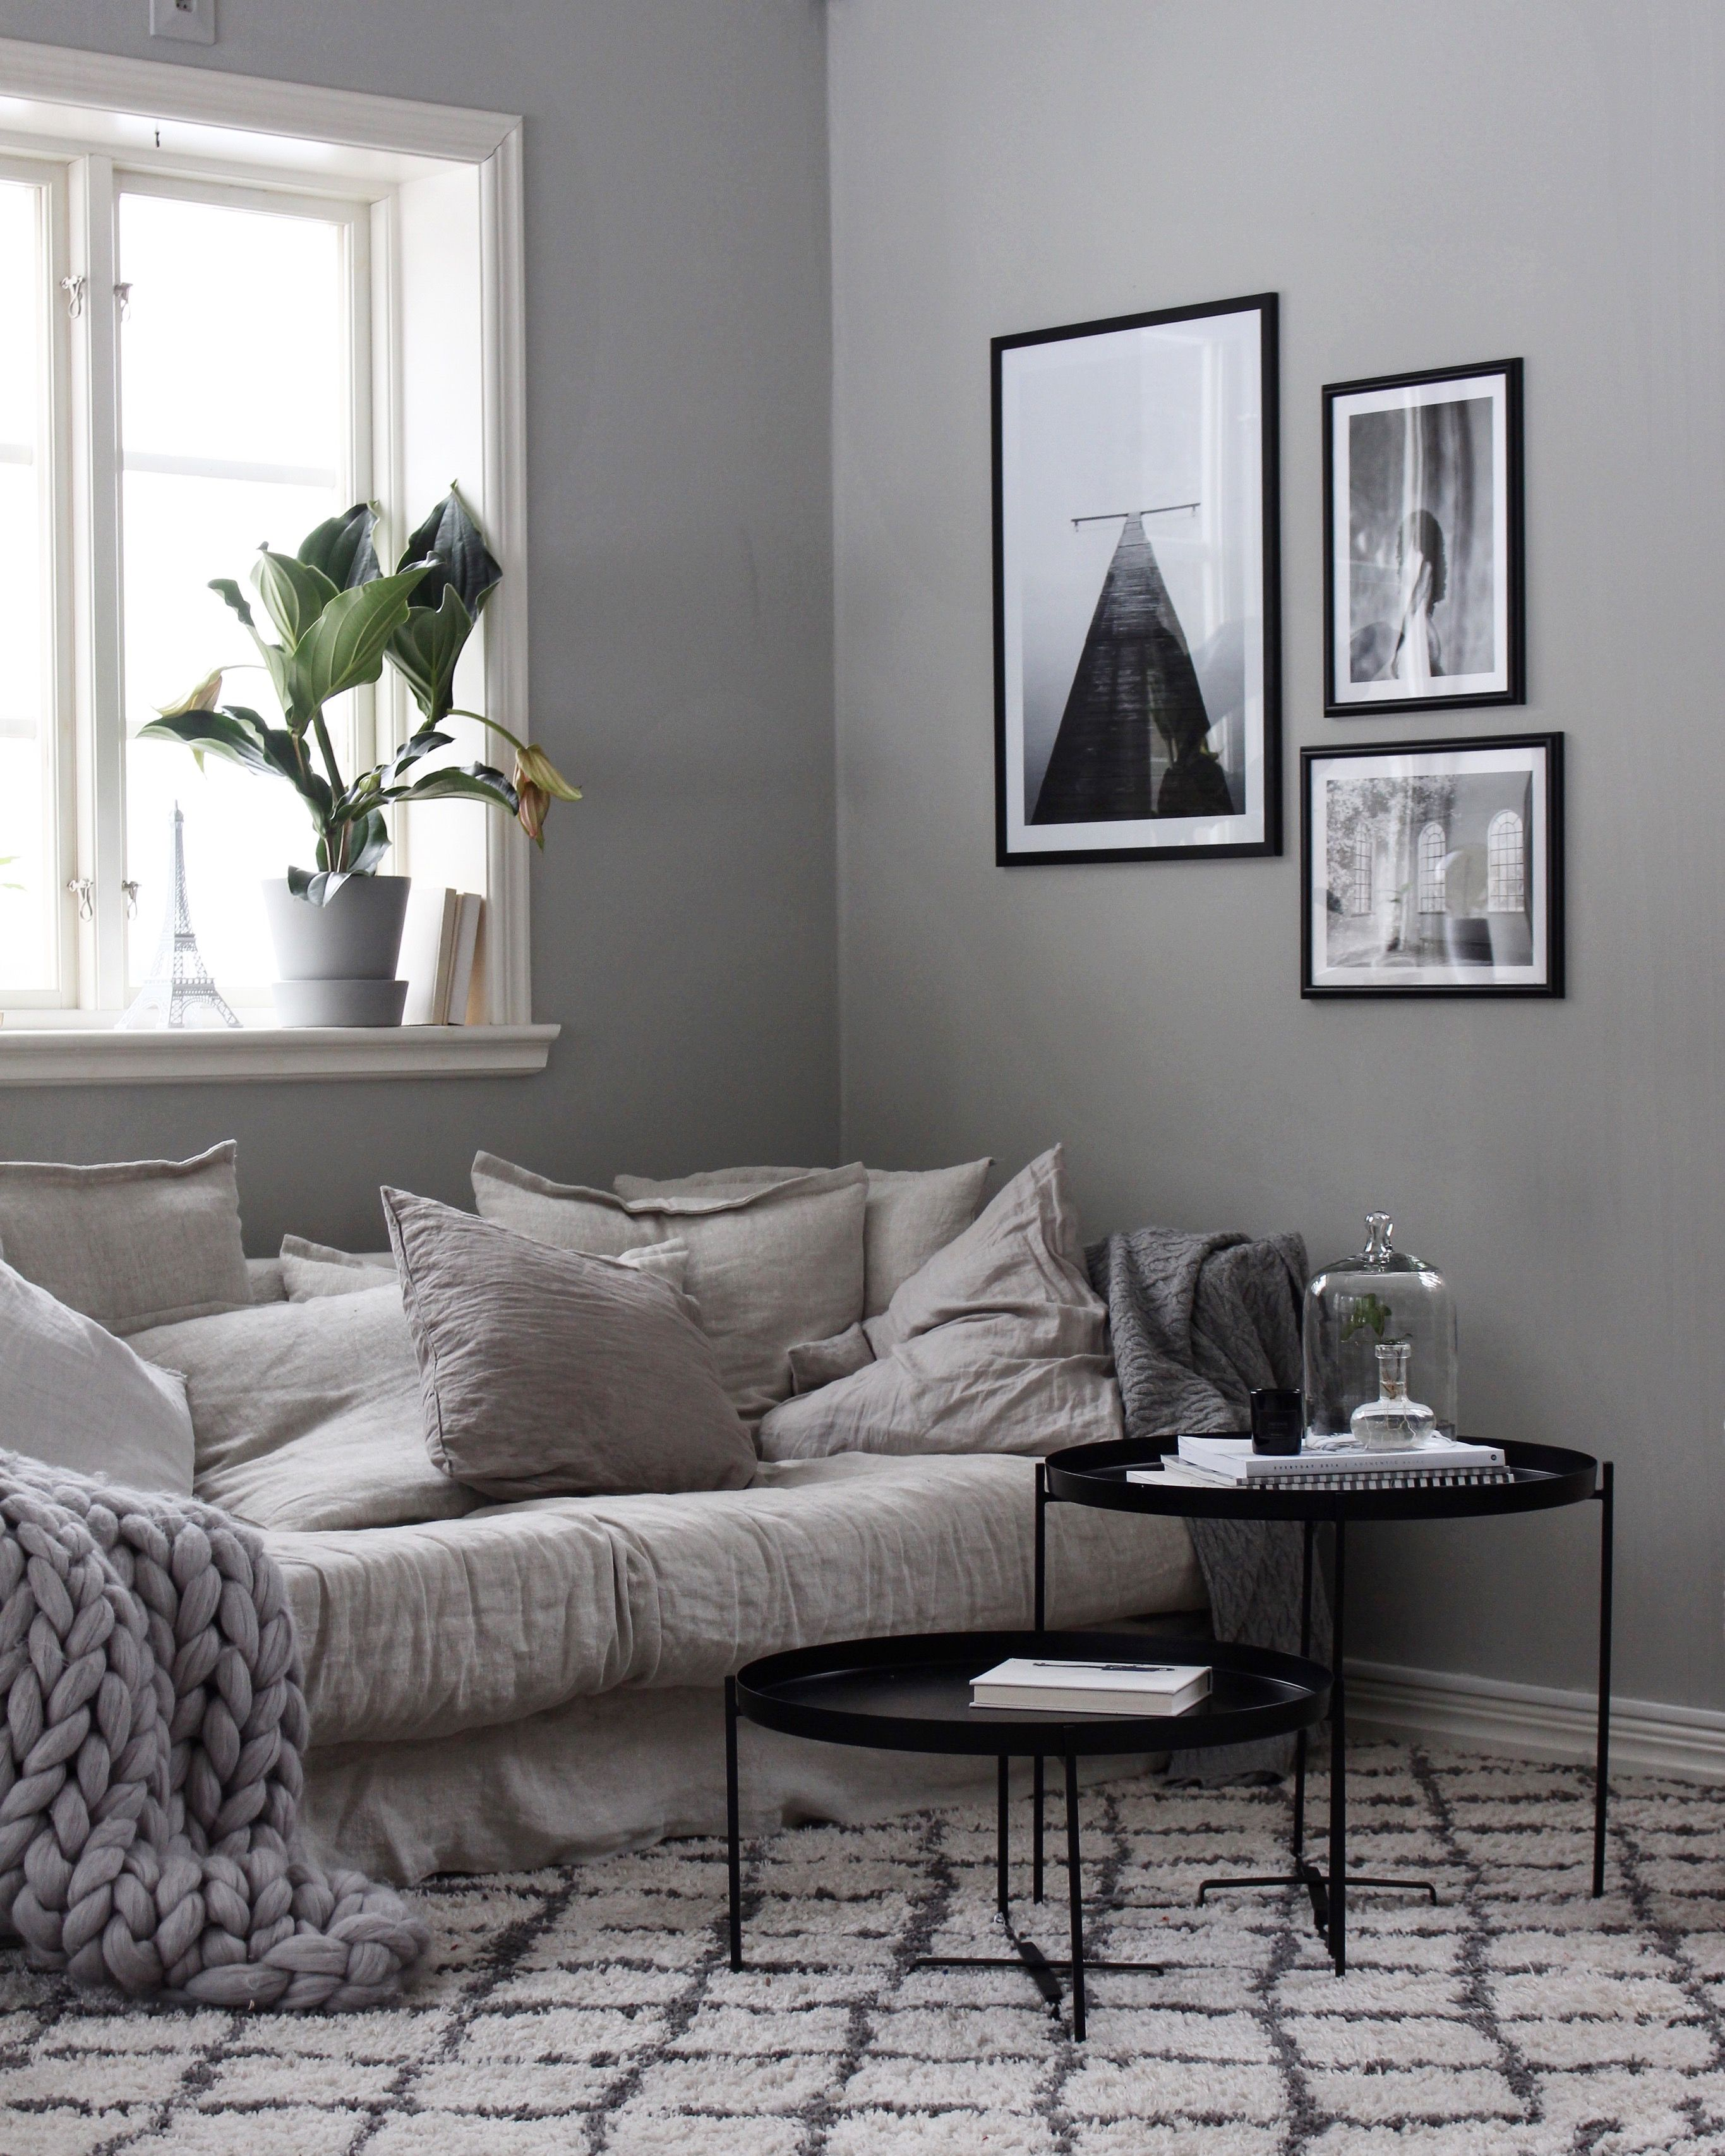 Living Room Colour Goals And Gorgeous Textures Too Livingroom Livingroom Industrial Interior Design Living Room Interior Design Living Room Interior Design #textures #for #living #room